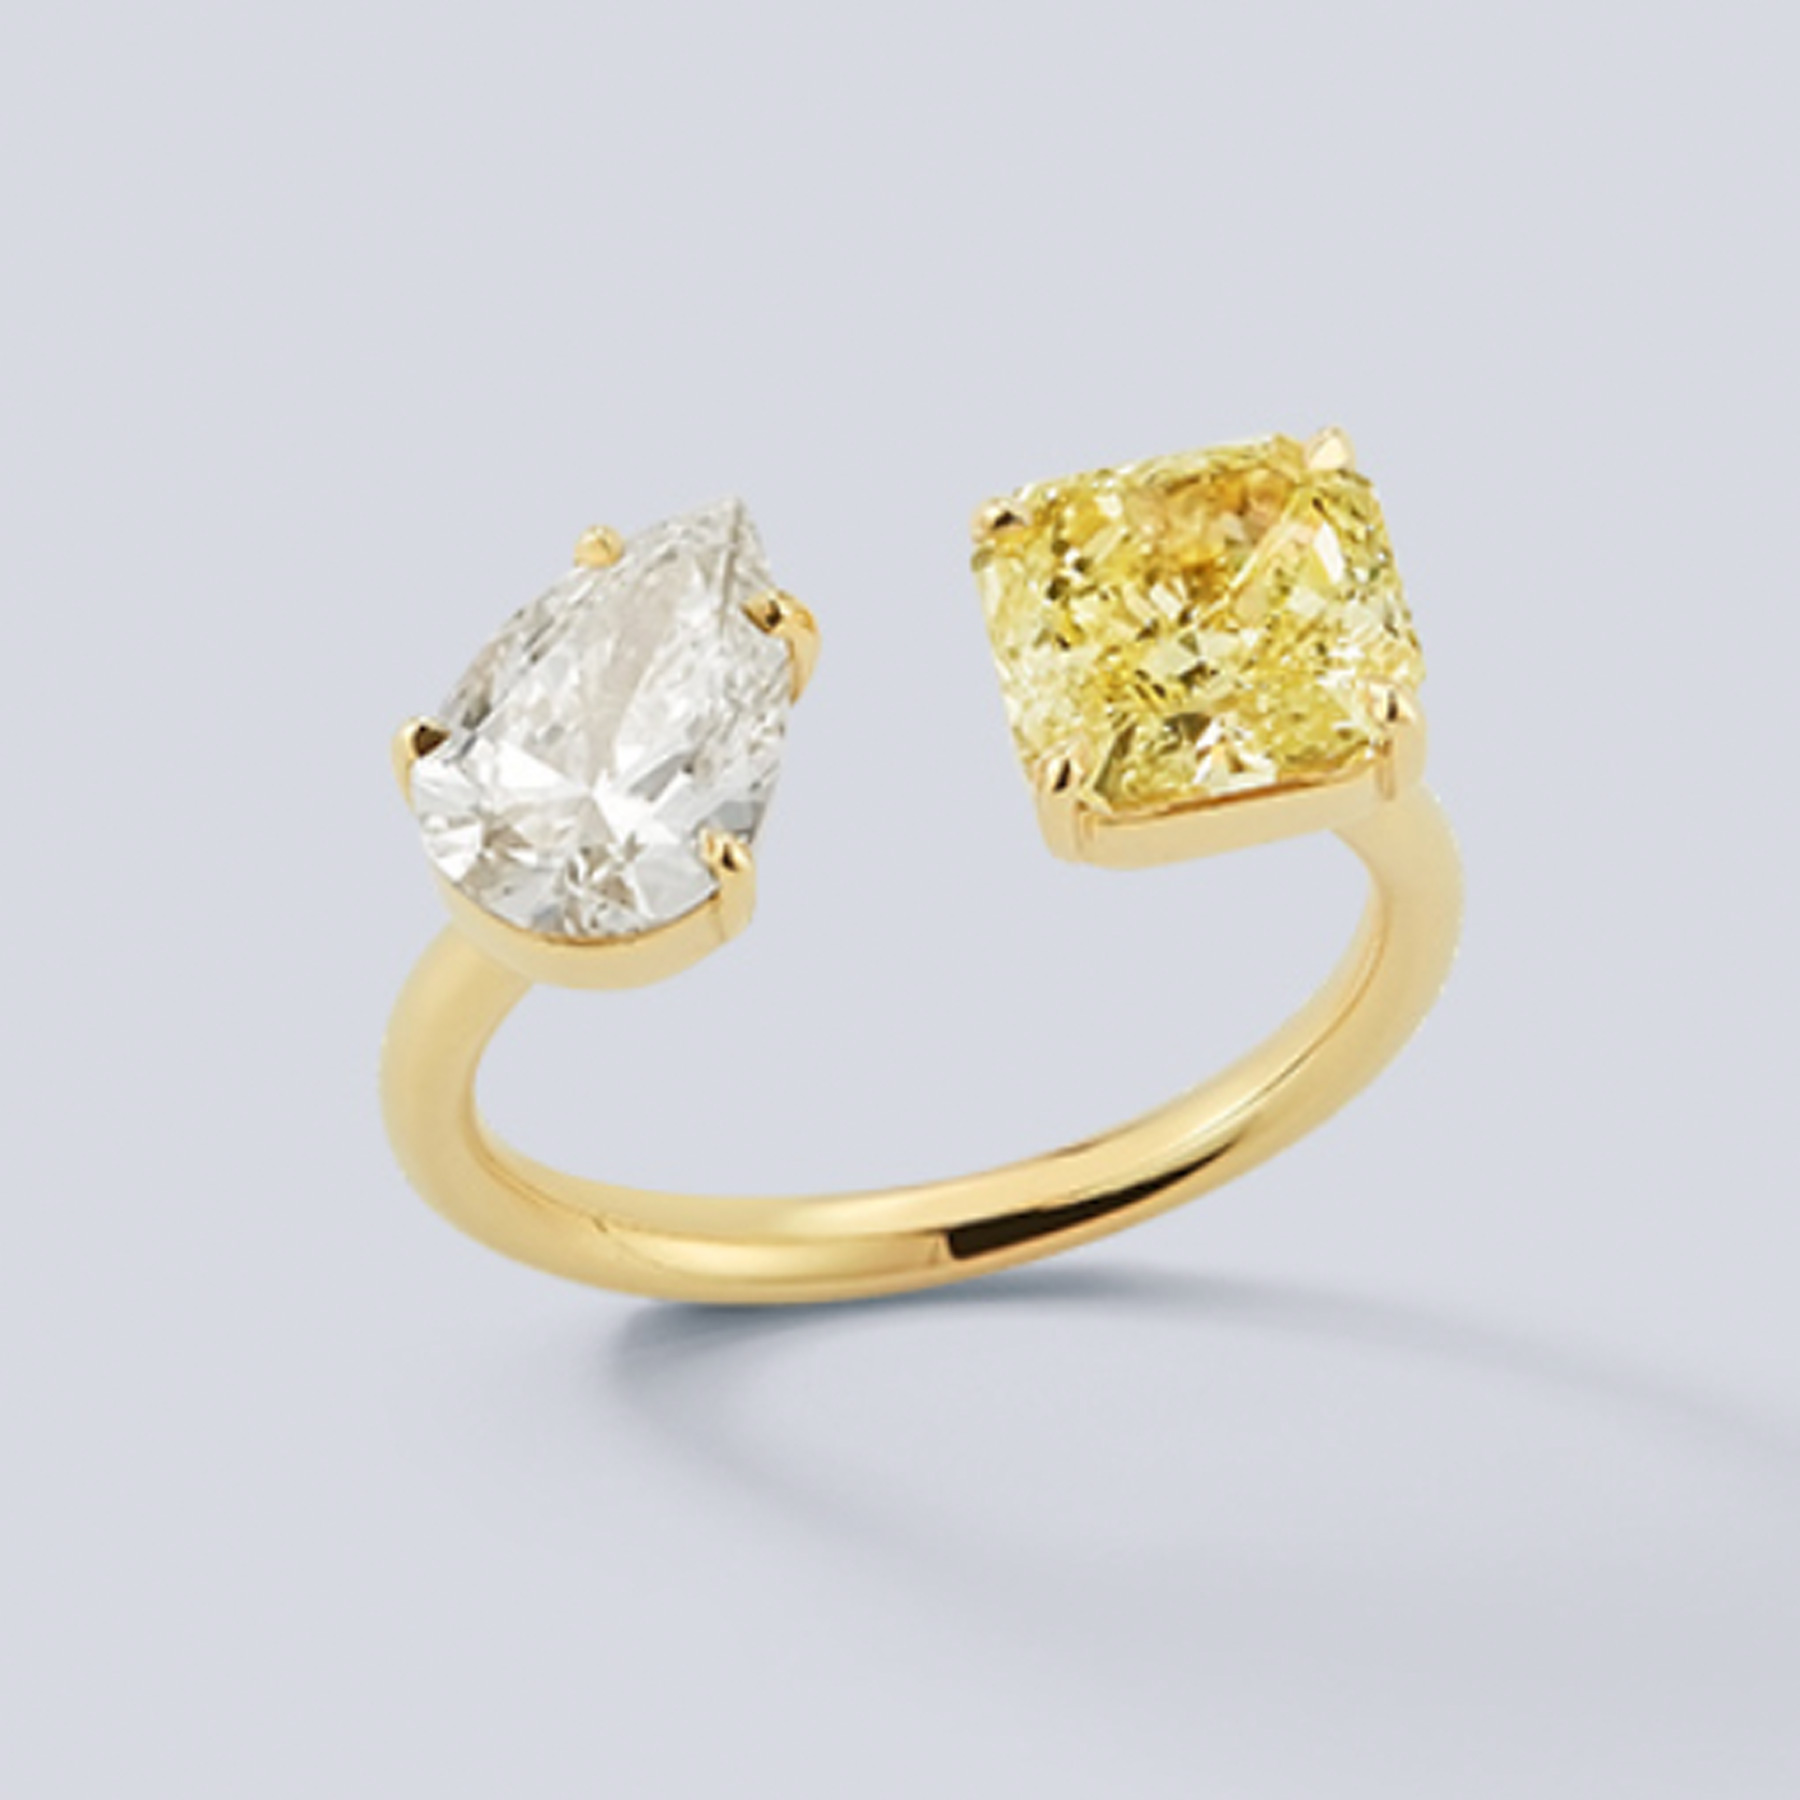 Engagement Ring Trends 2021: Jemma Wynne two-stone white and yellow diamond engagement ring